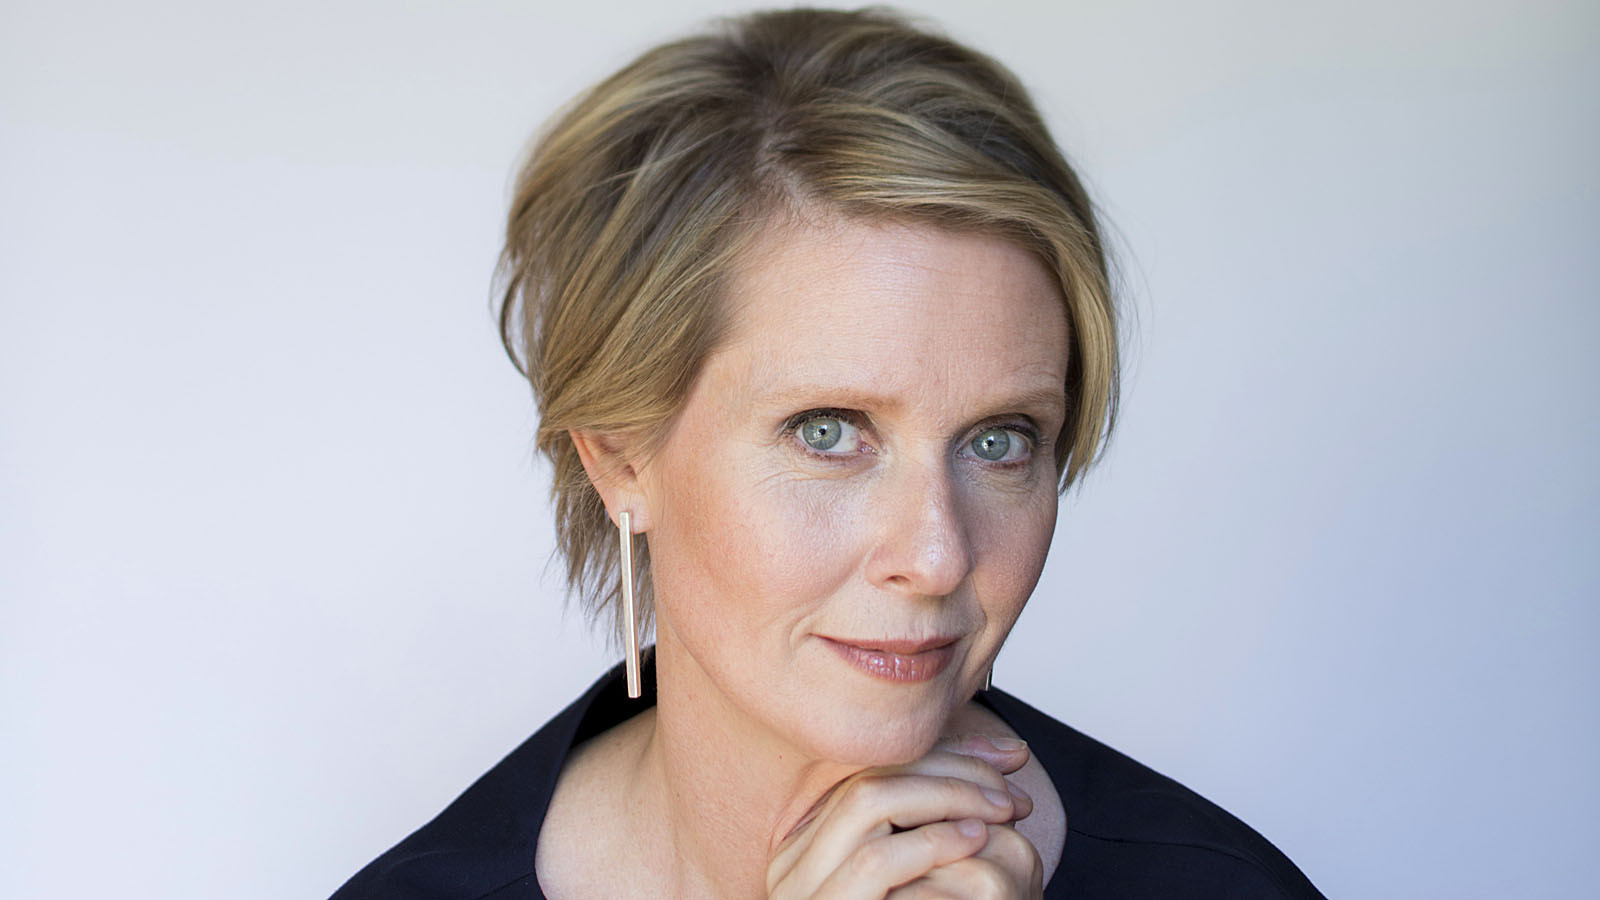 cynthia nixon - photo #12